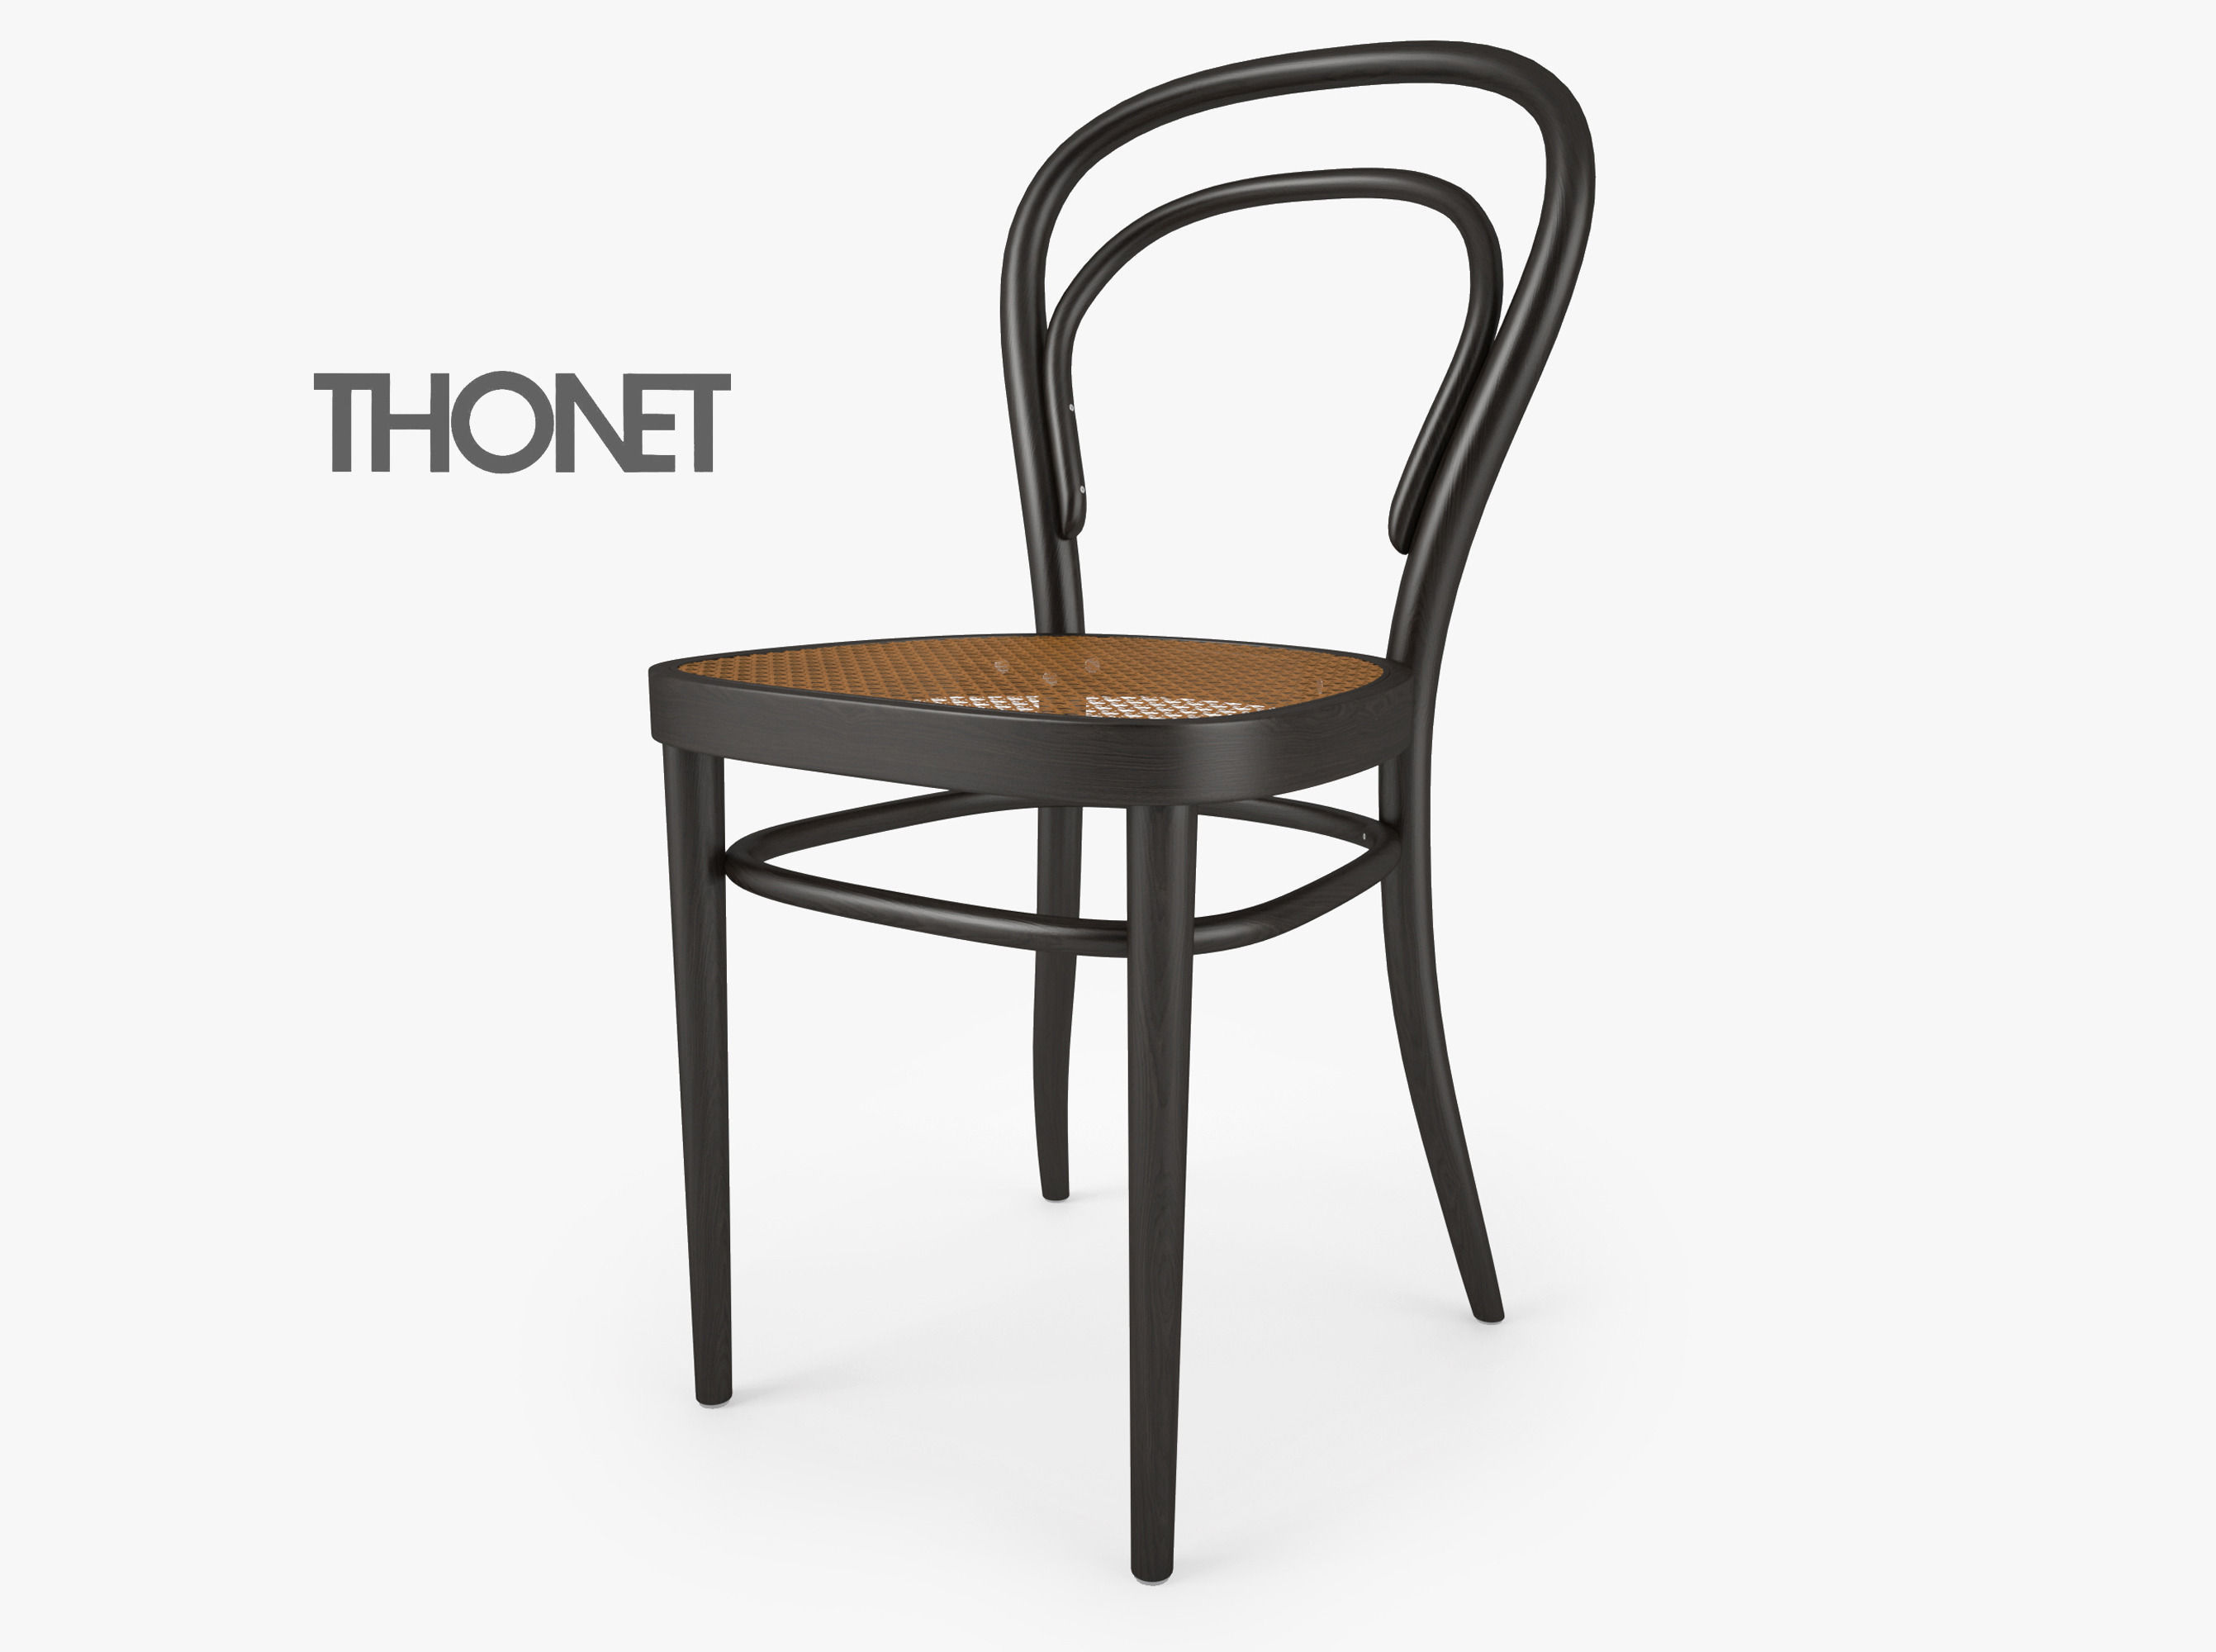 Thonet 214 Chair 3d Model Max Obj Fbx Mtl 1 ...